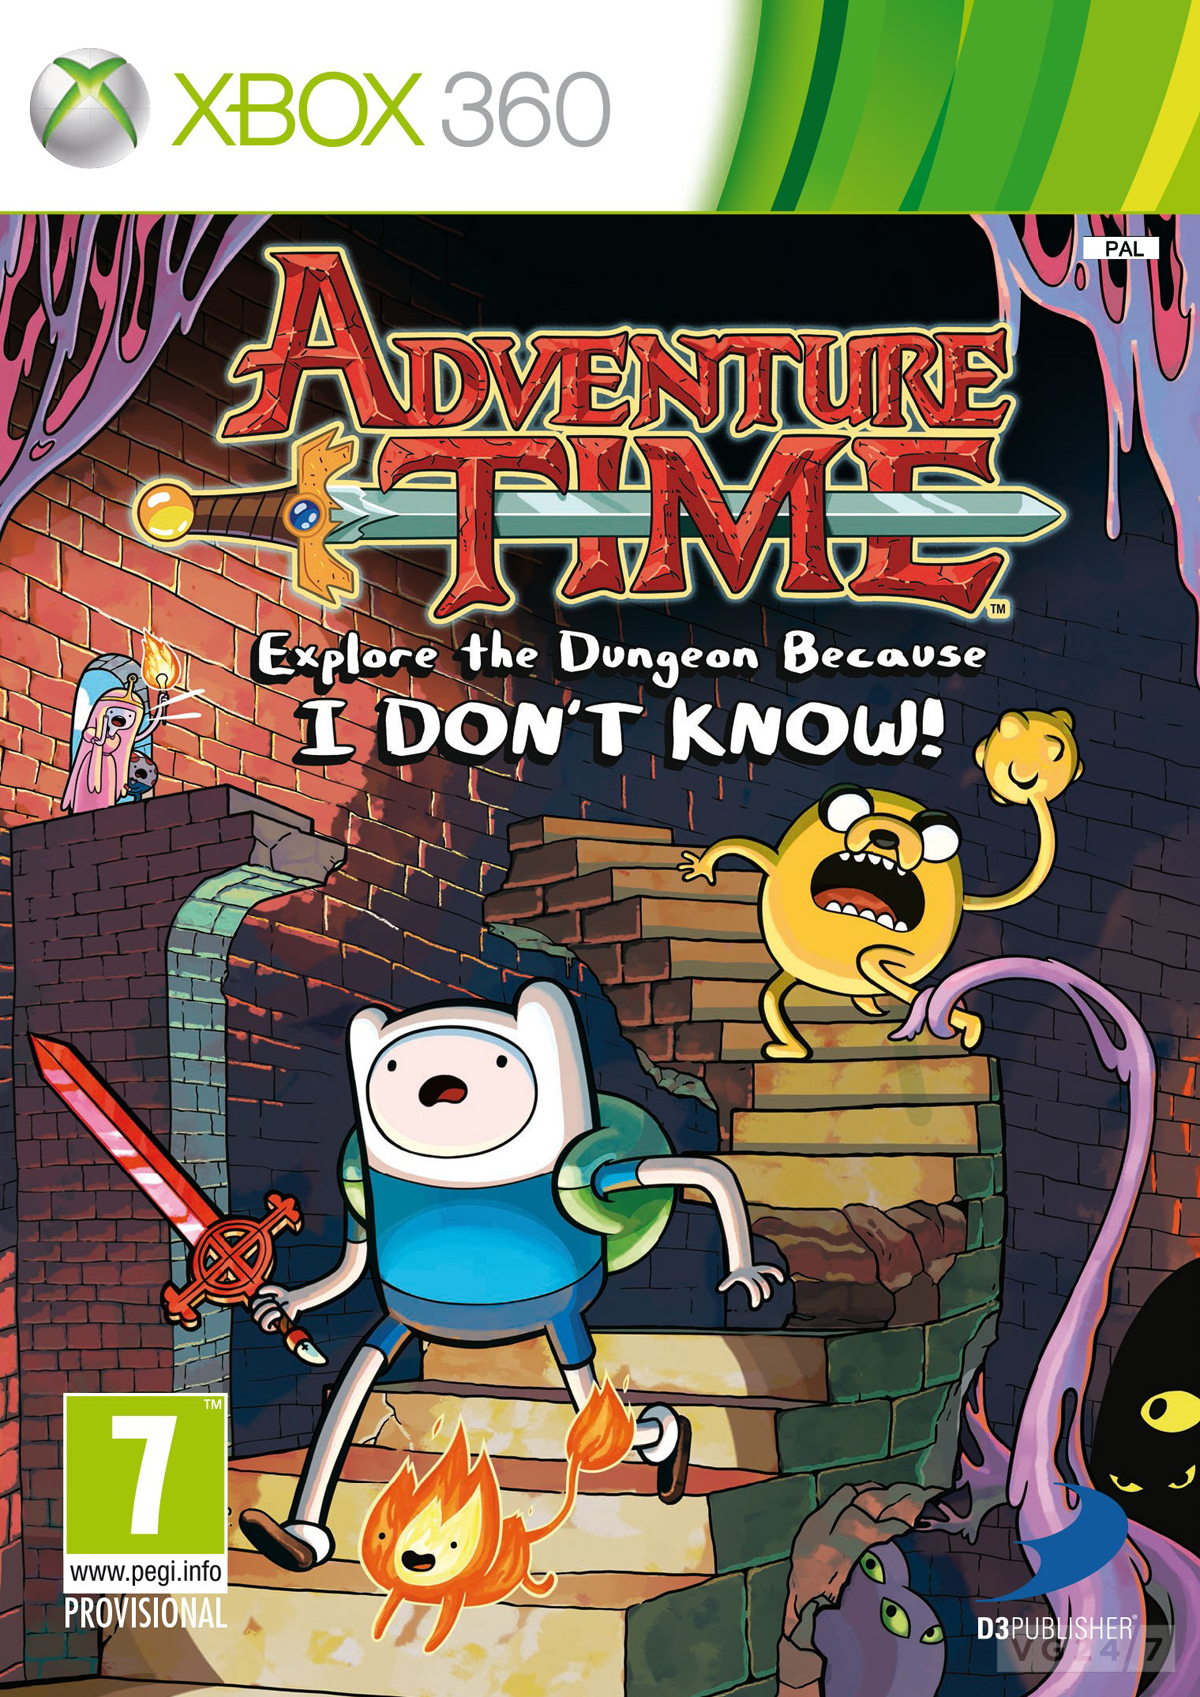 Adventure Time And Regular Show Assets Shows Off Both